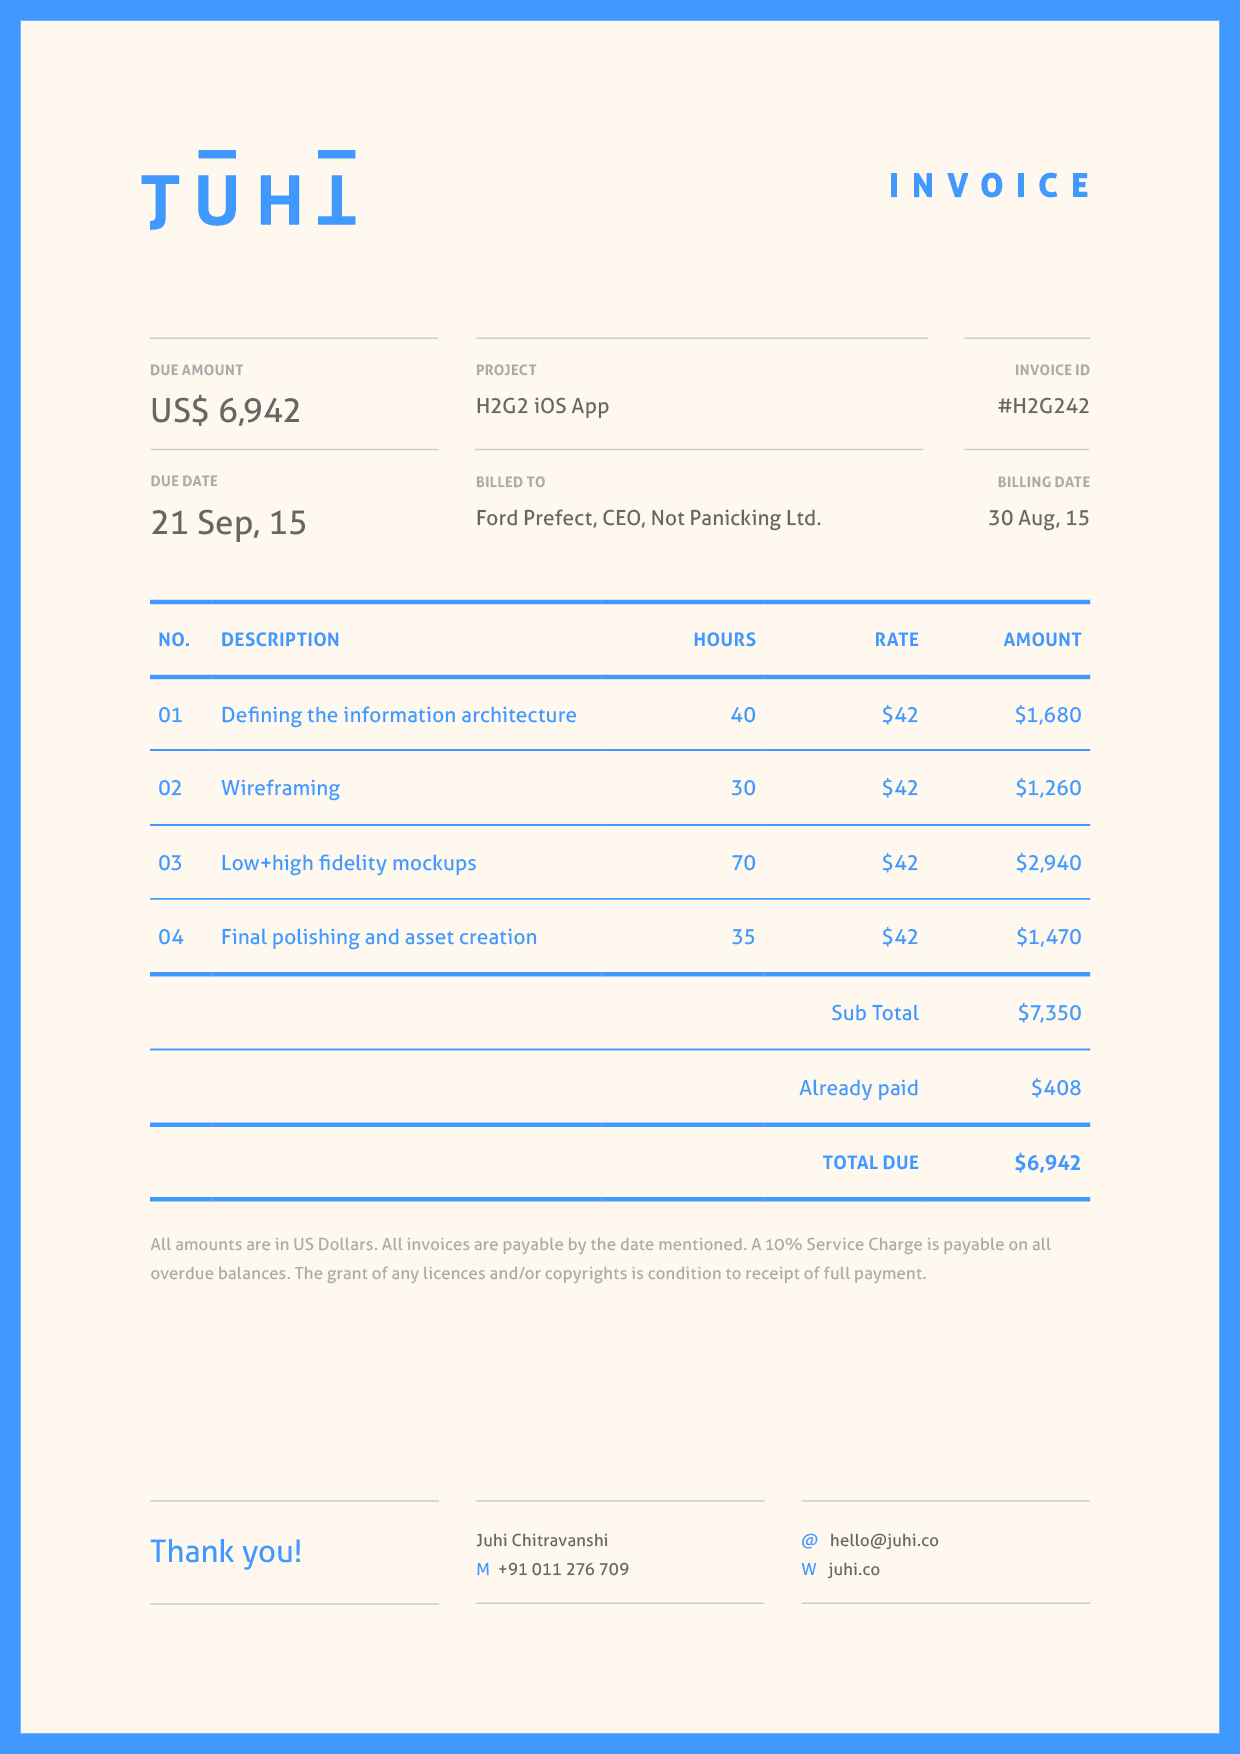 Ebitus  Pretty Dont Hold Back On Your Invoice  Inspiring Designs  With Gorgeous Invoice By Juhi Chitravanshi Follow With Breathtaking Work Receipt Also Purchase Receipt Template In Addition Receipt Tracking Software And Taxi Cab Receipts As Well As Receipt Organization Additionally Expense Receipt App From Inspirationfeedcom With Ebitus  Gorgeous Dont Hold Back On Your Invoice  Inspiring Designs  With Breathtaking Invoice By Juhi Chitravanshi Follow And Pretty Work Receipt Also Purchase Receipt Template In Addition Receipt Tracking Software From Inspirationfeedcom